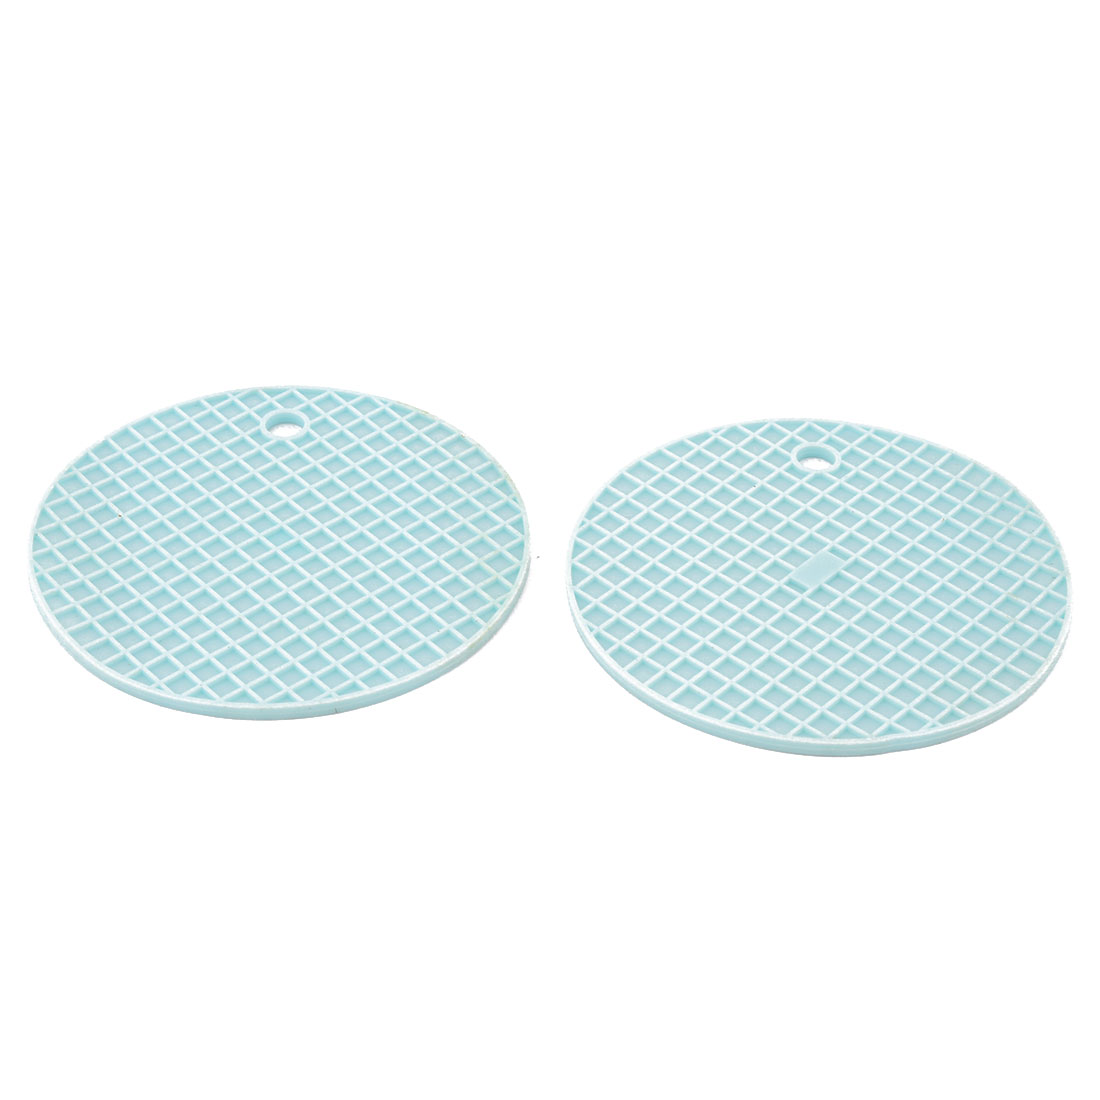 Household Kitchenware Silicone Heat Resistant Non-slip Hot Pot Dish Bowl Holder Insulation Mat Cyan 2 Pcs